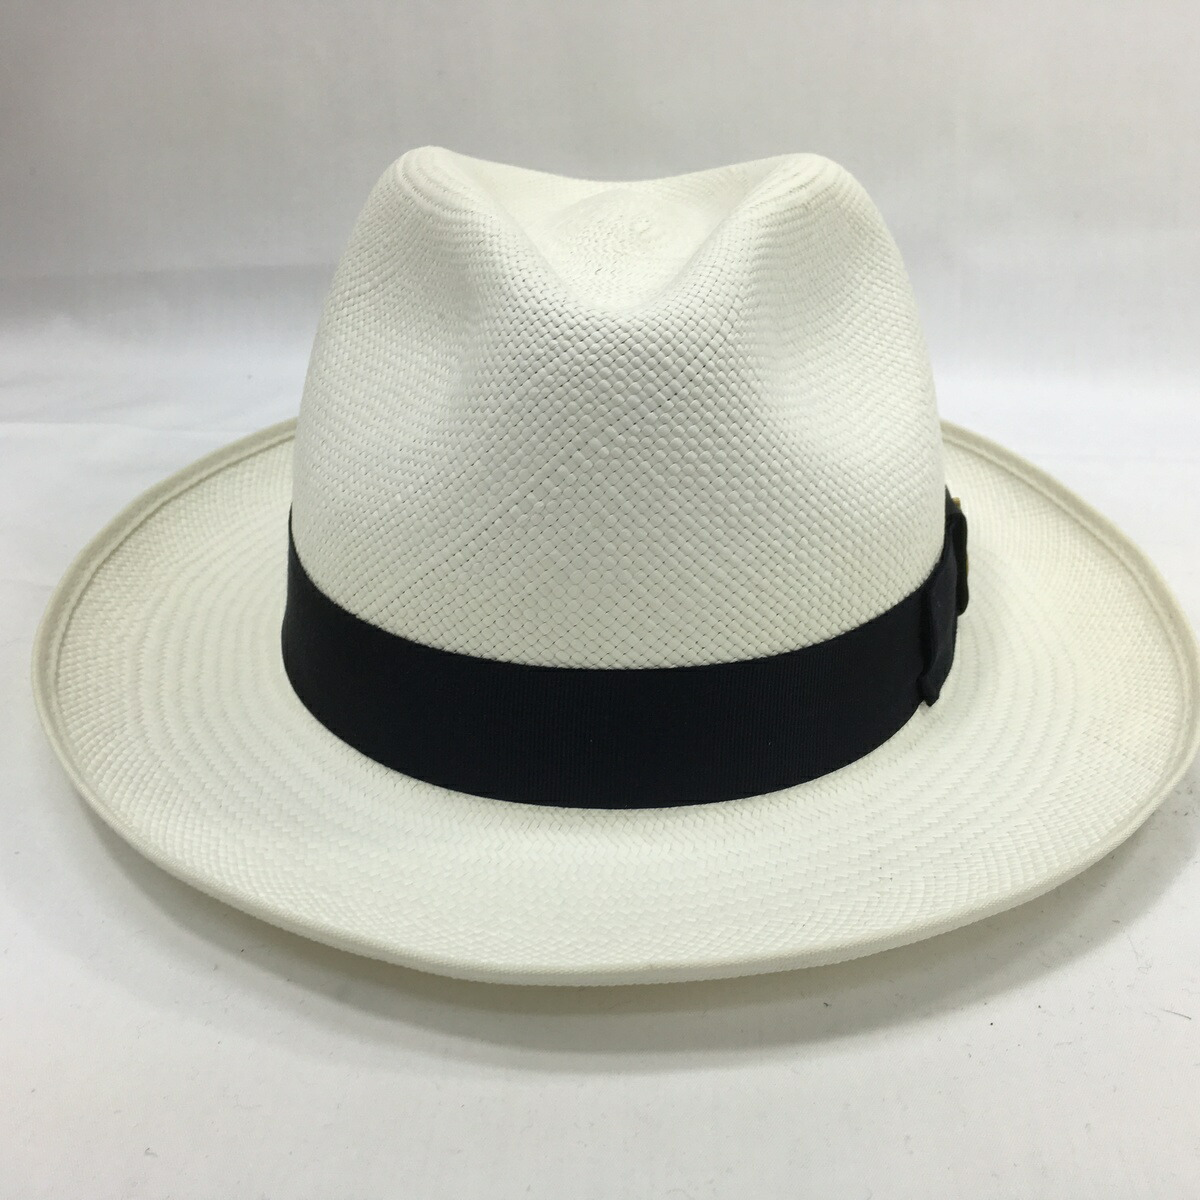 dcc994fd6 Panama /CHRISTYS LONDON (Christie's) and size development of hat / mens /  ladies / gents / made in England / / Fedora Hat/white /